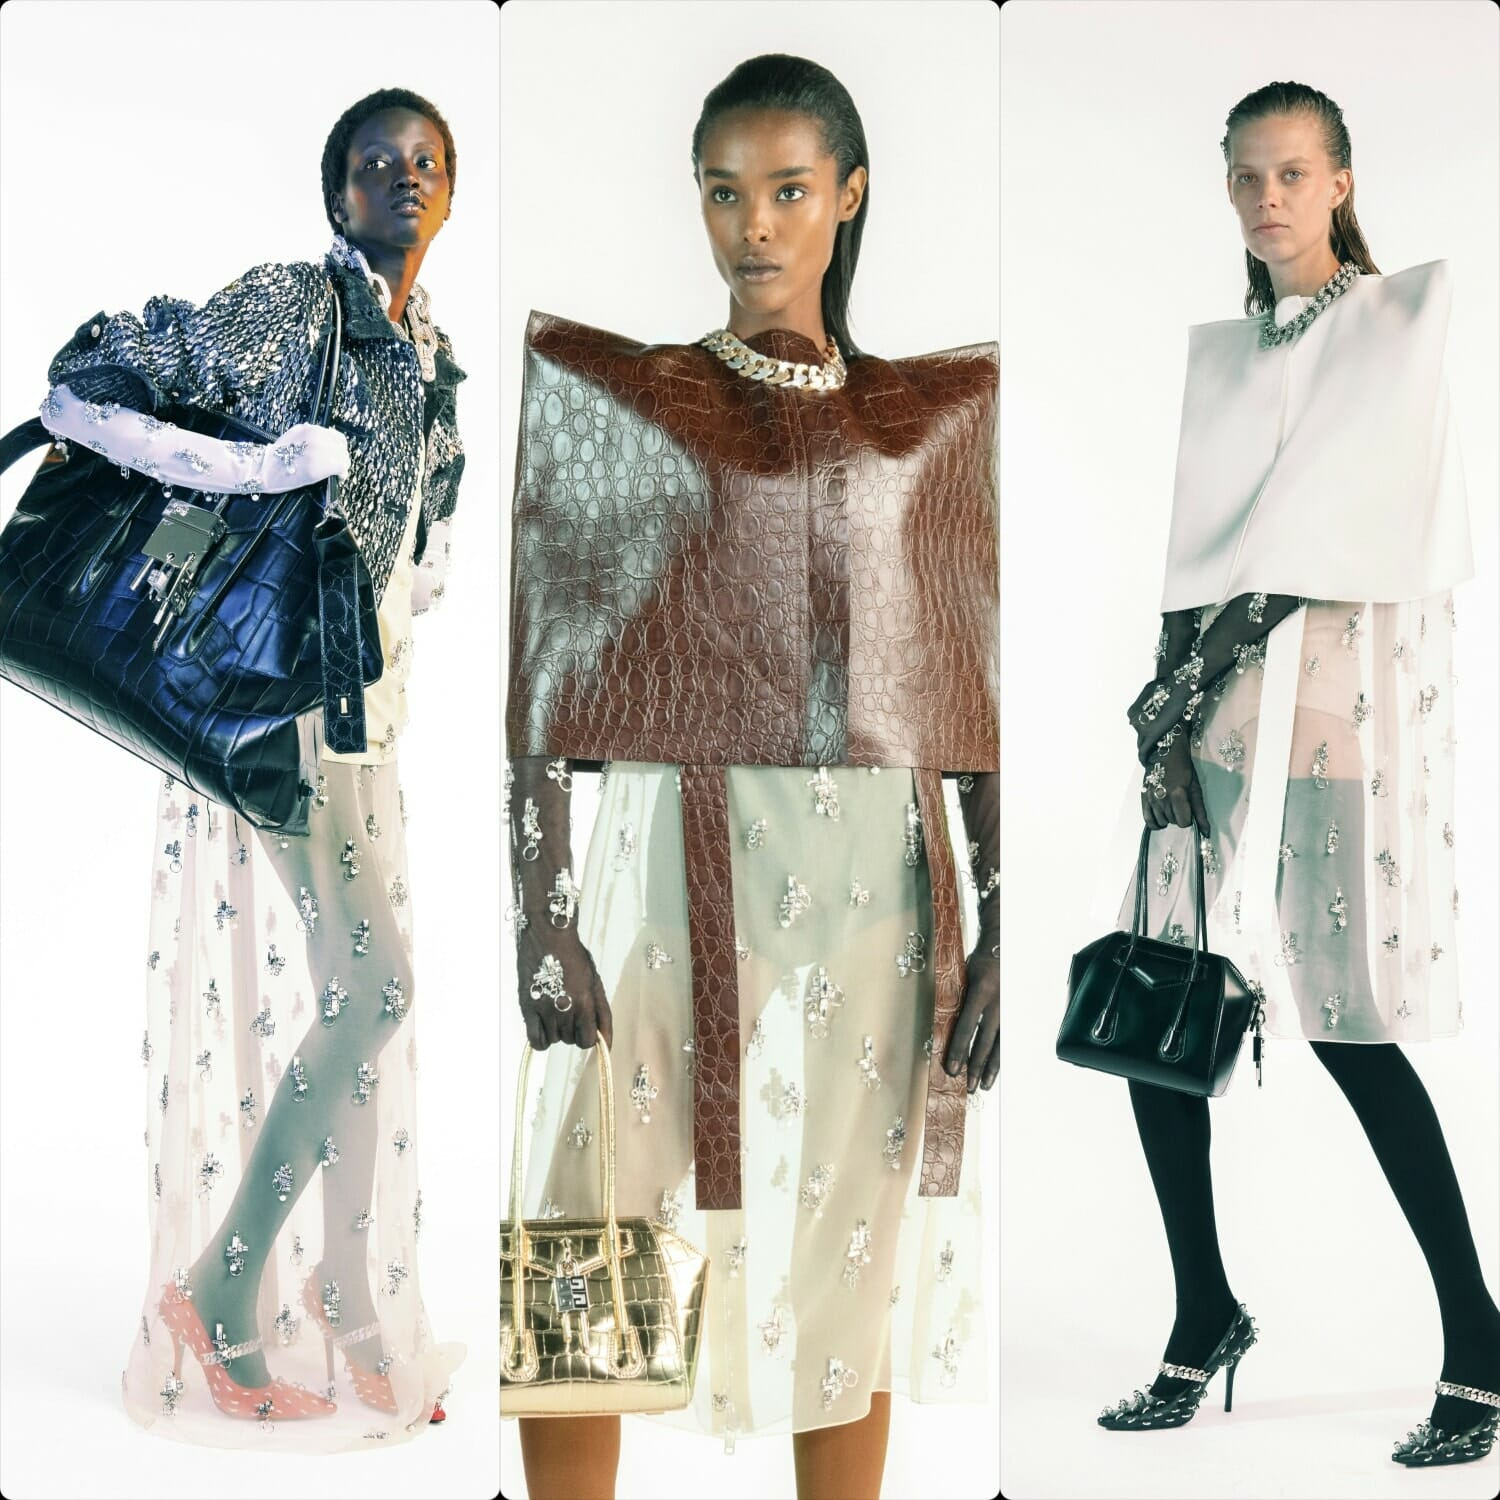 Givenchy Spring Summer 2021 Paris. RUNWAY MAGAZINE ® Collections. RUNWAY NOW / RUNWAY NEW